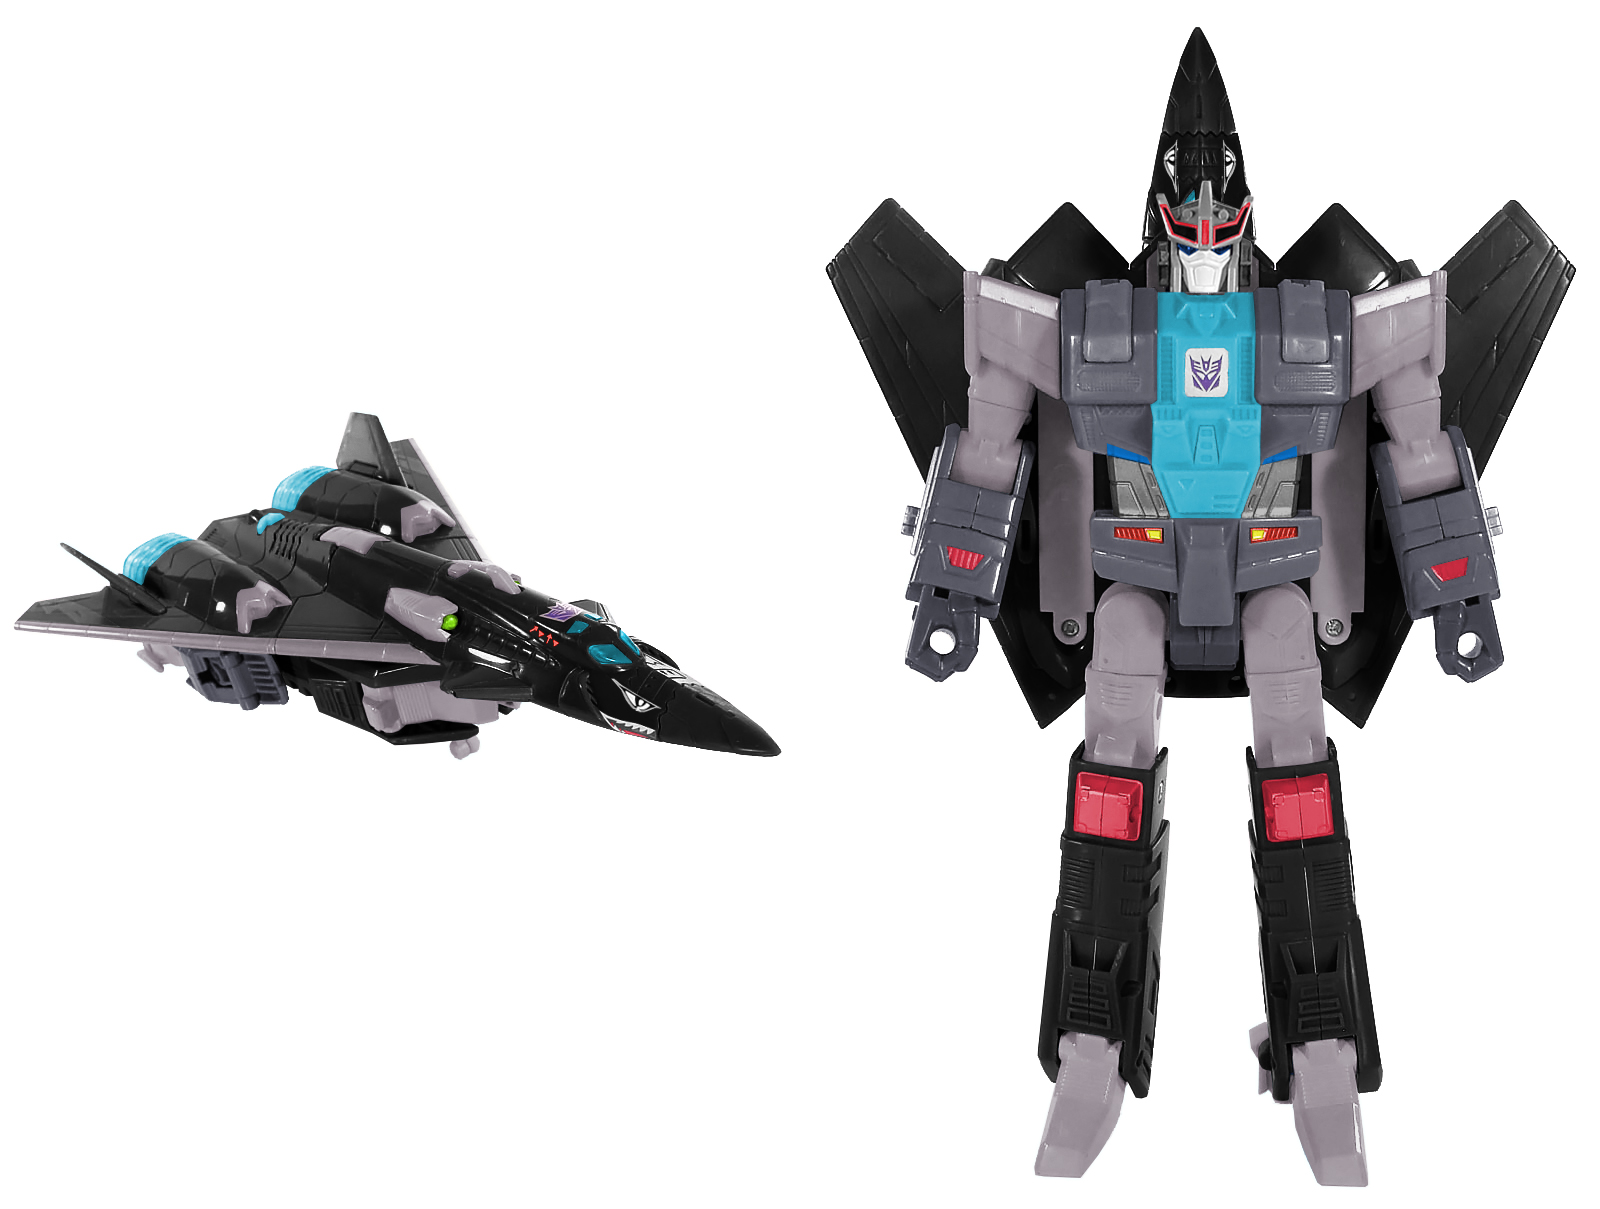 Black Machine Wars Starscream Botcon 2013